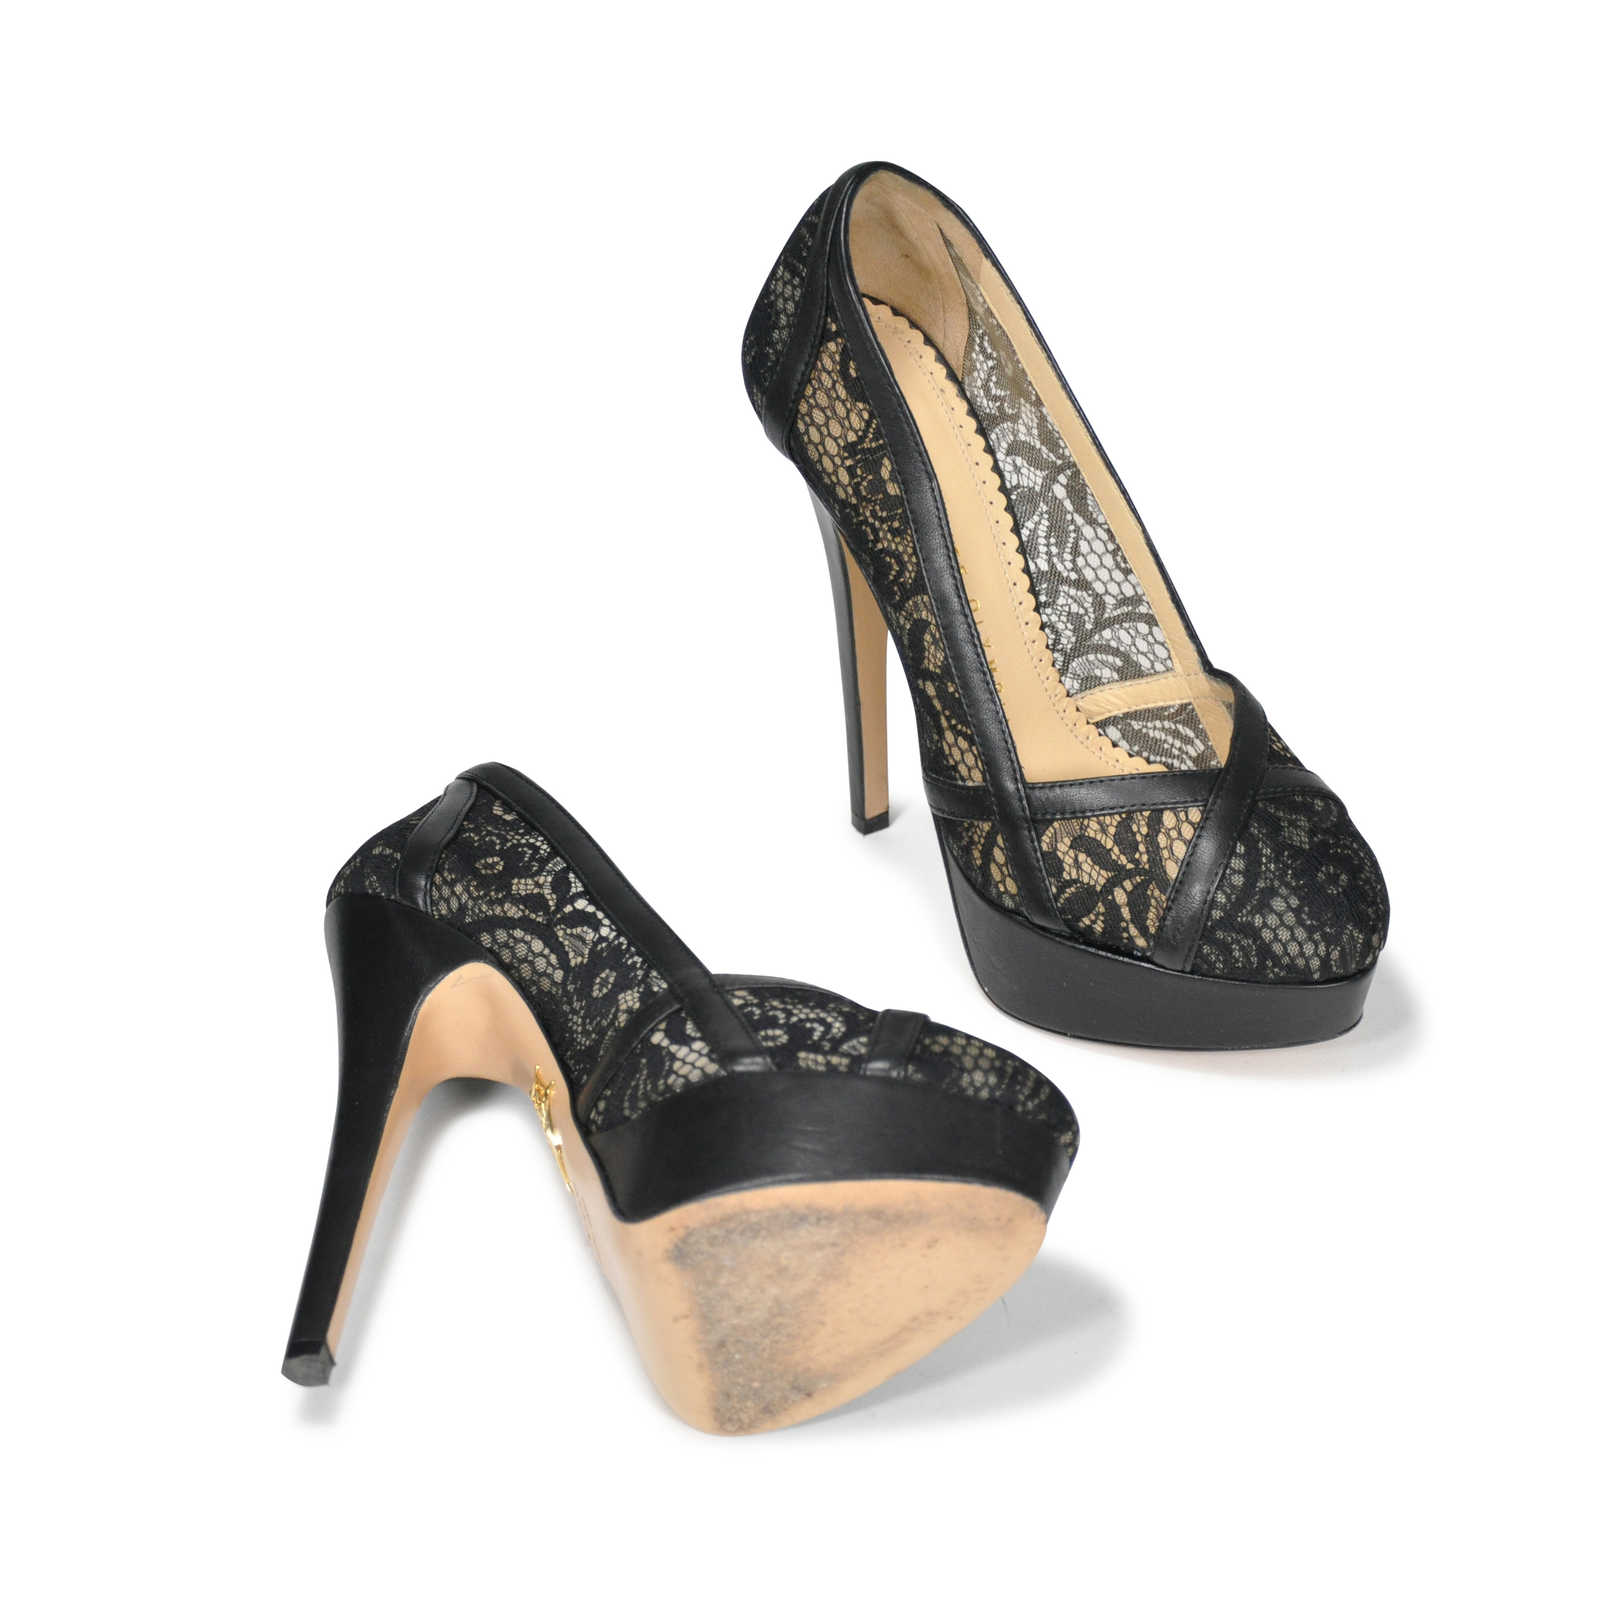 best prices sale online Charlotte Olympia Morwenna Platform Pumps 2015 new sale new cheap sale new DEYAtwSyjh